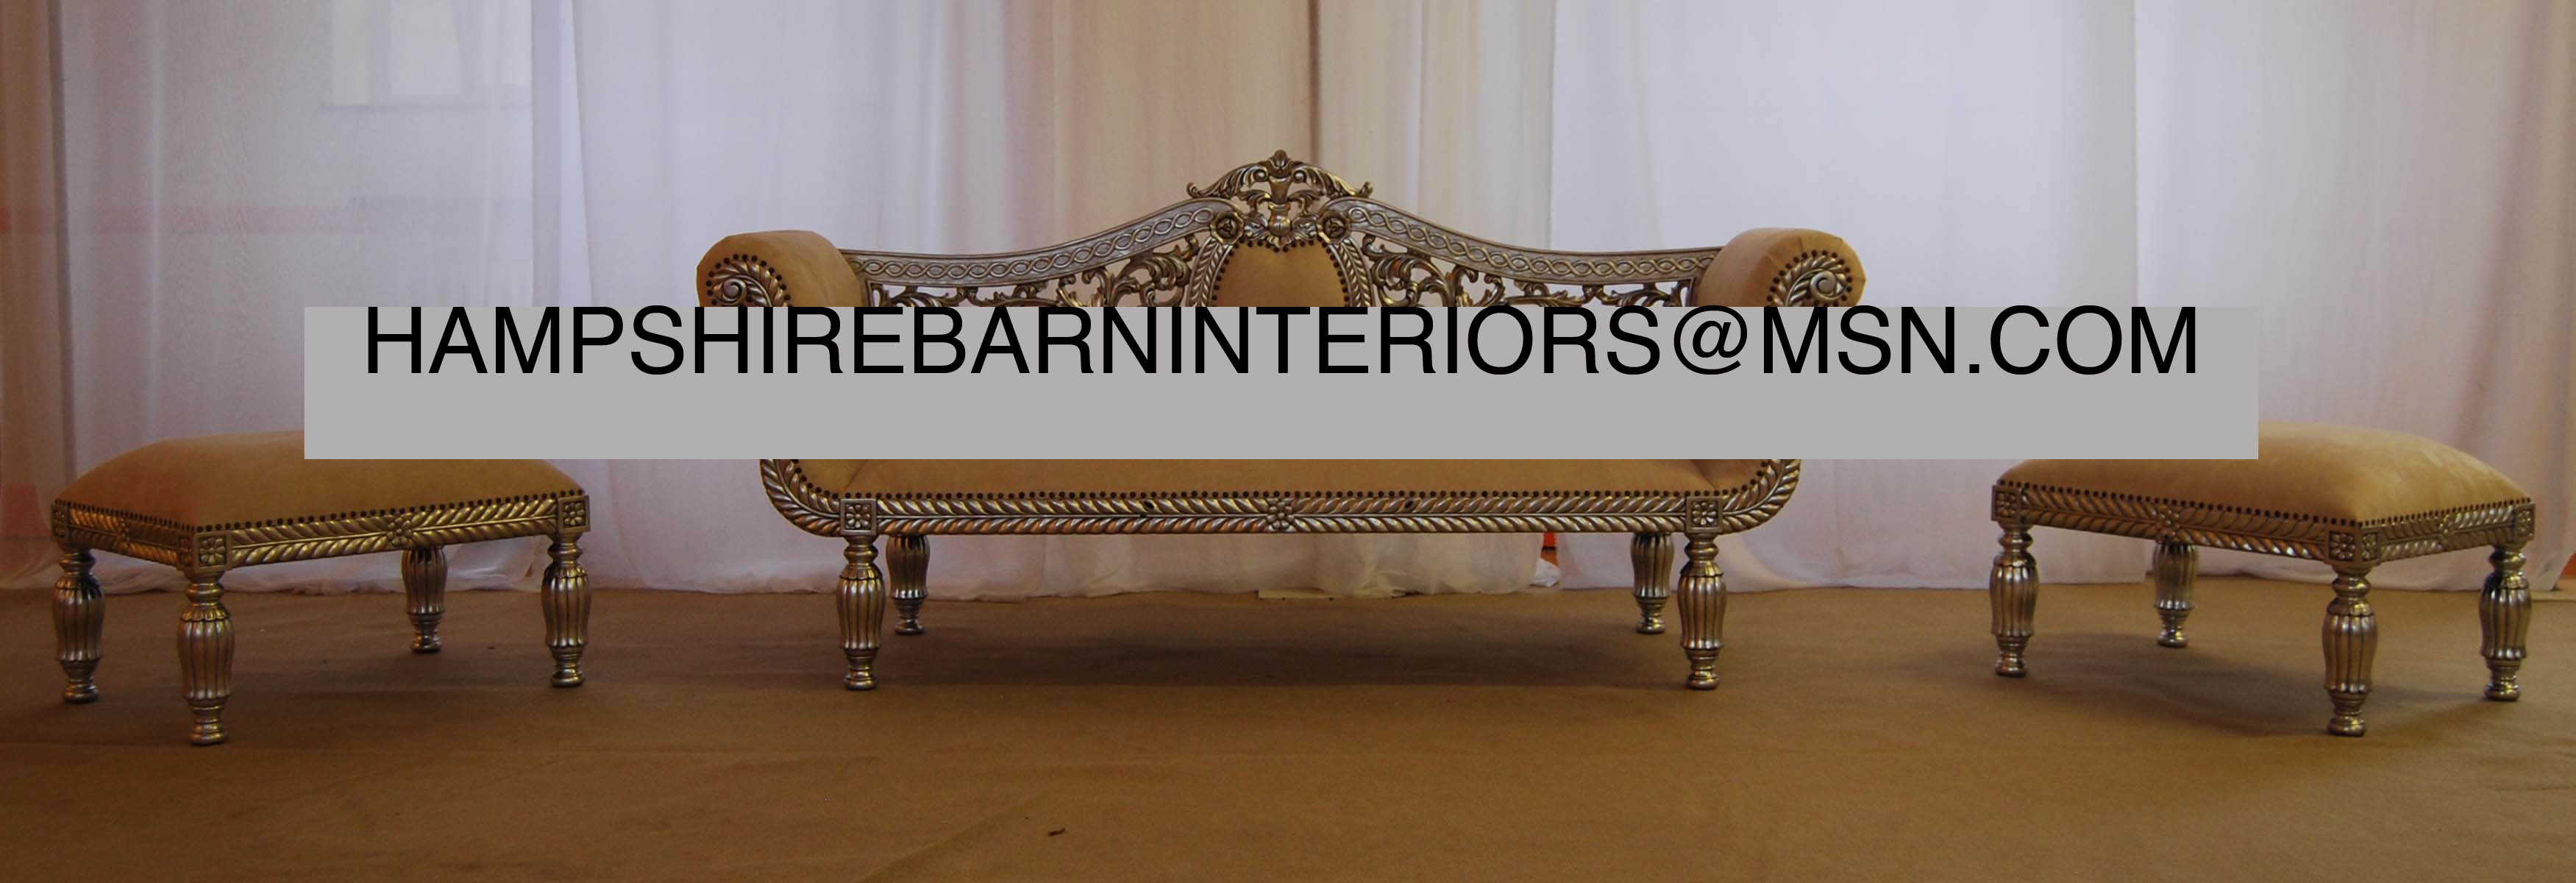 Chaise Longue Telephone Table Search Results Hampshire Barn Interiors Chaise Longue